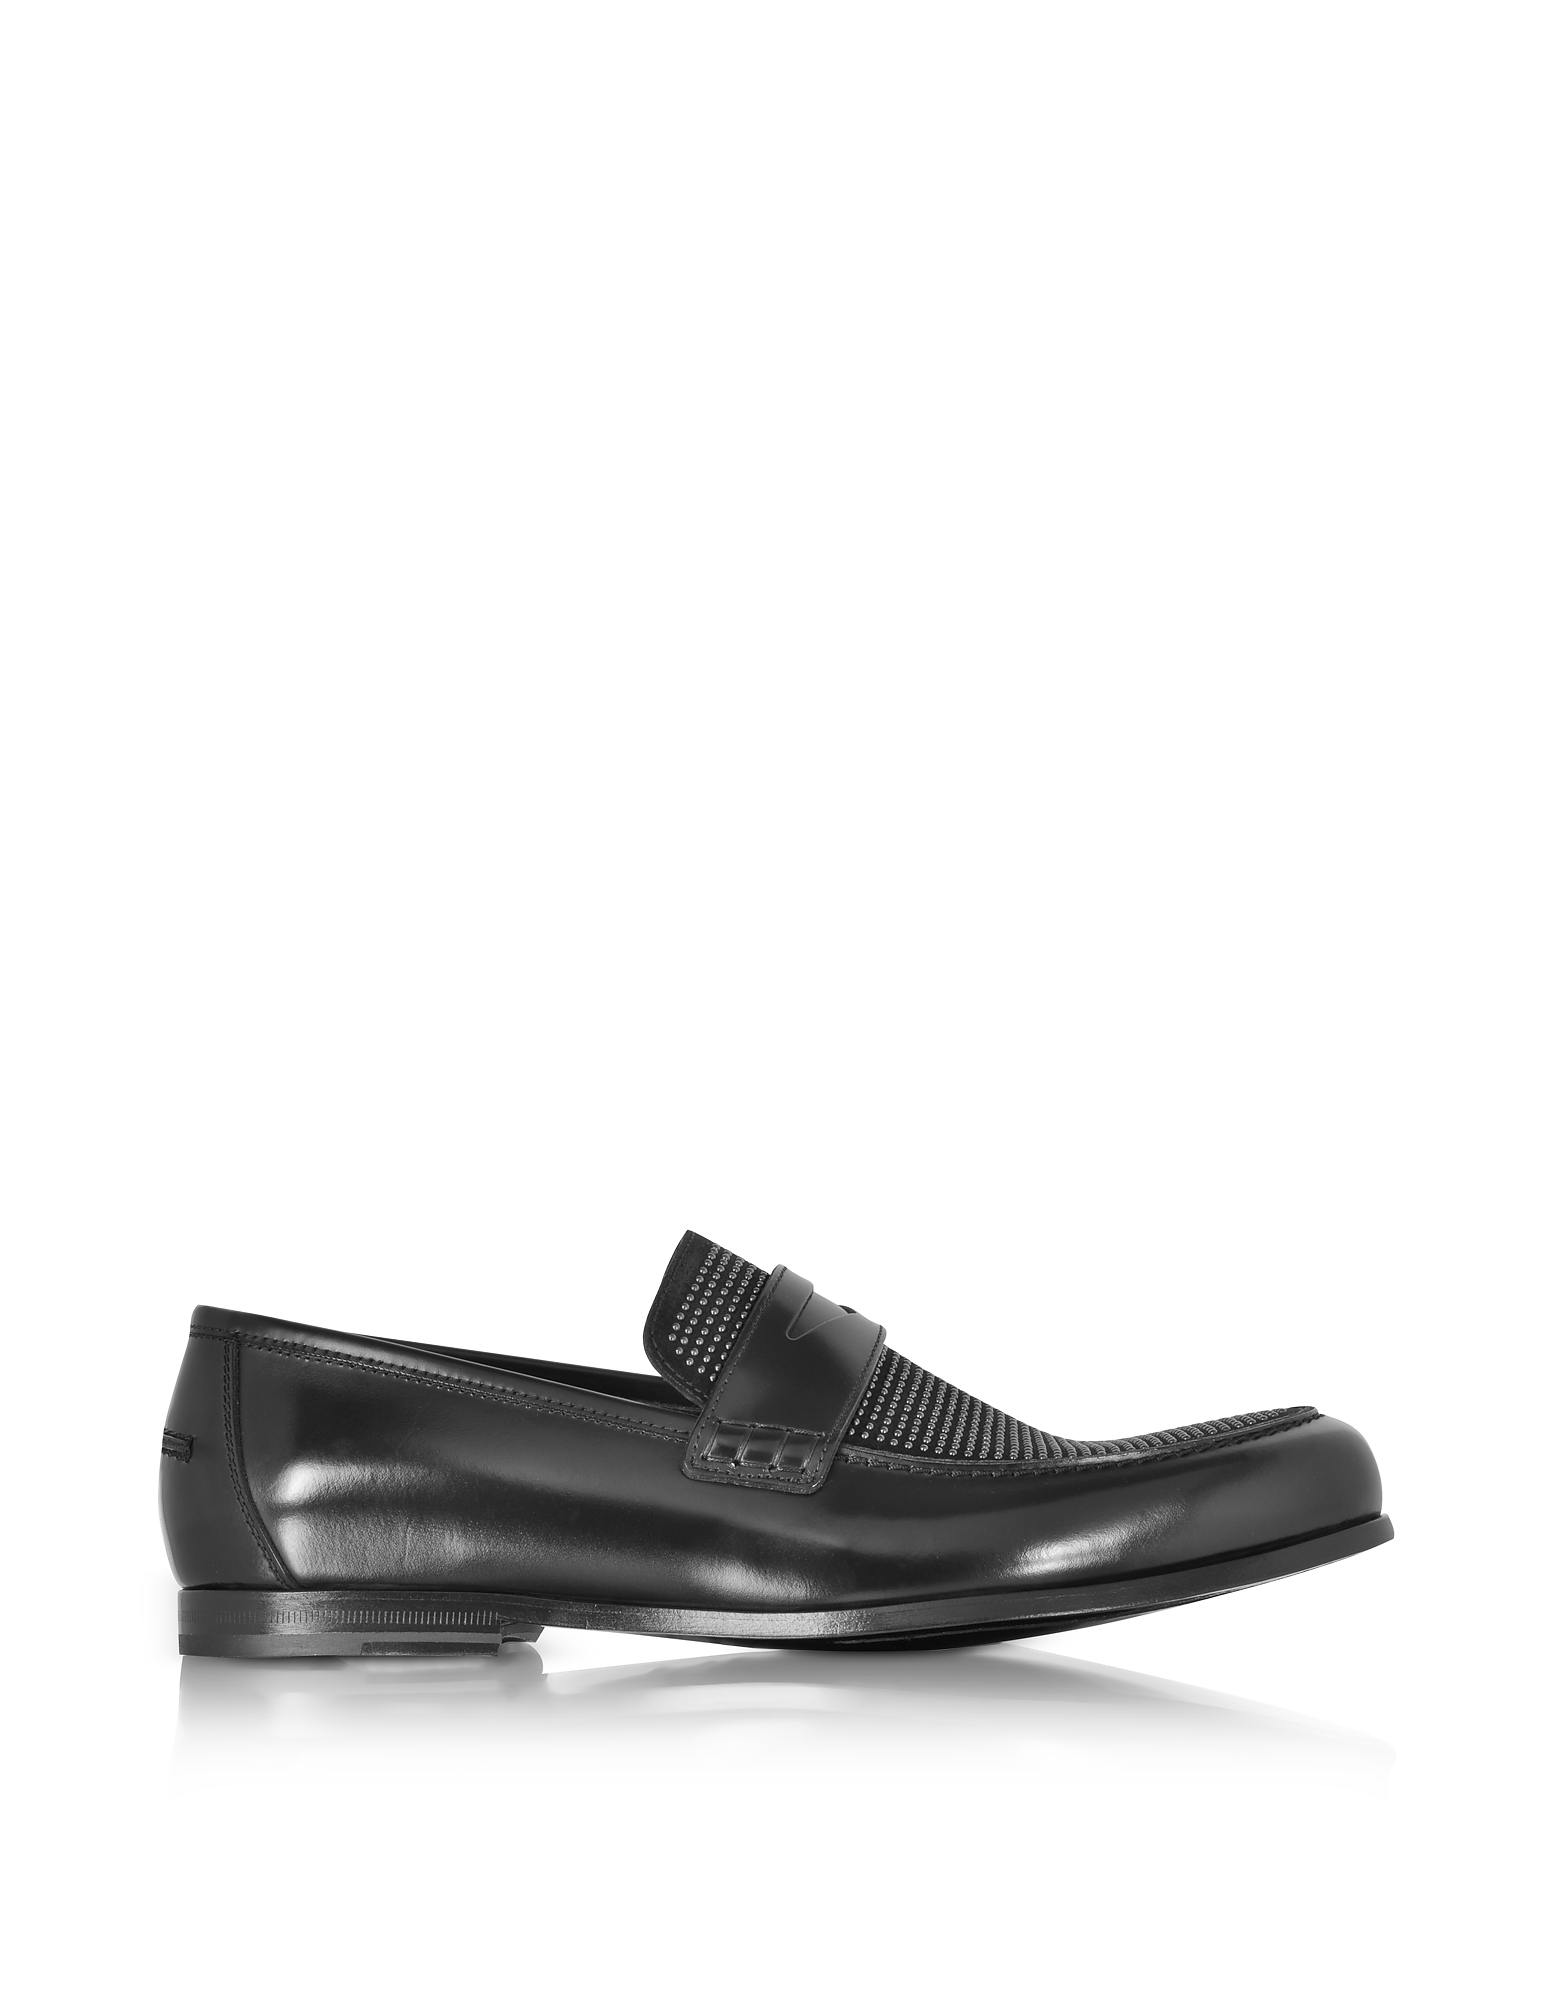 Jimmy Choo Shoes, Darblay Shiny Black Leather and Suede Loafers w/Studs